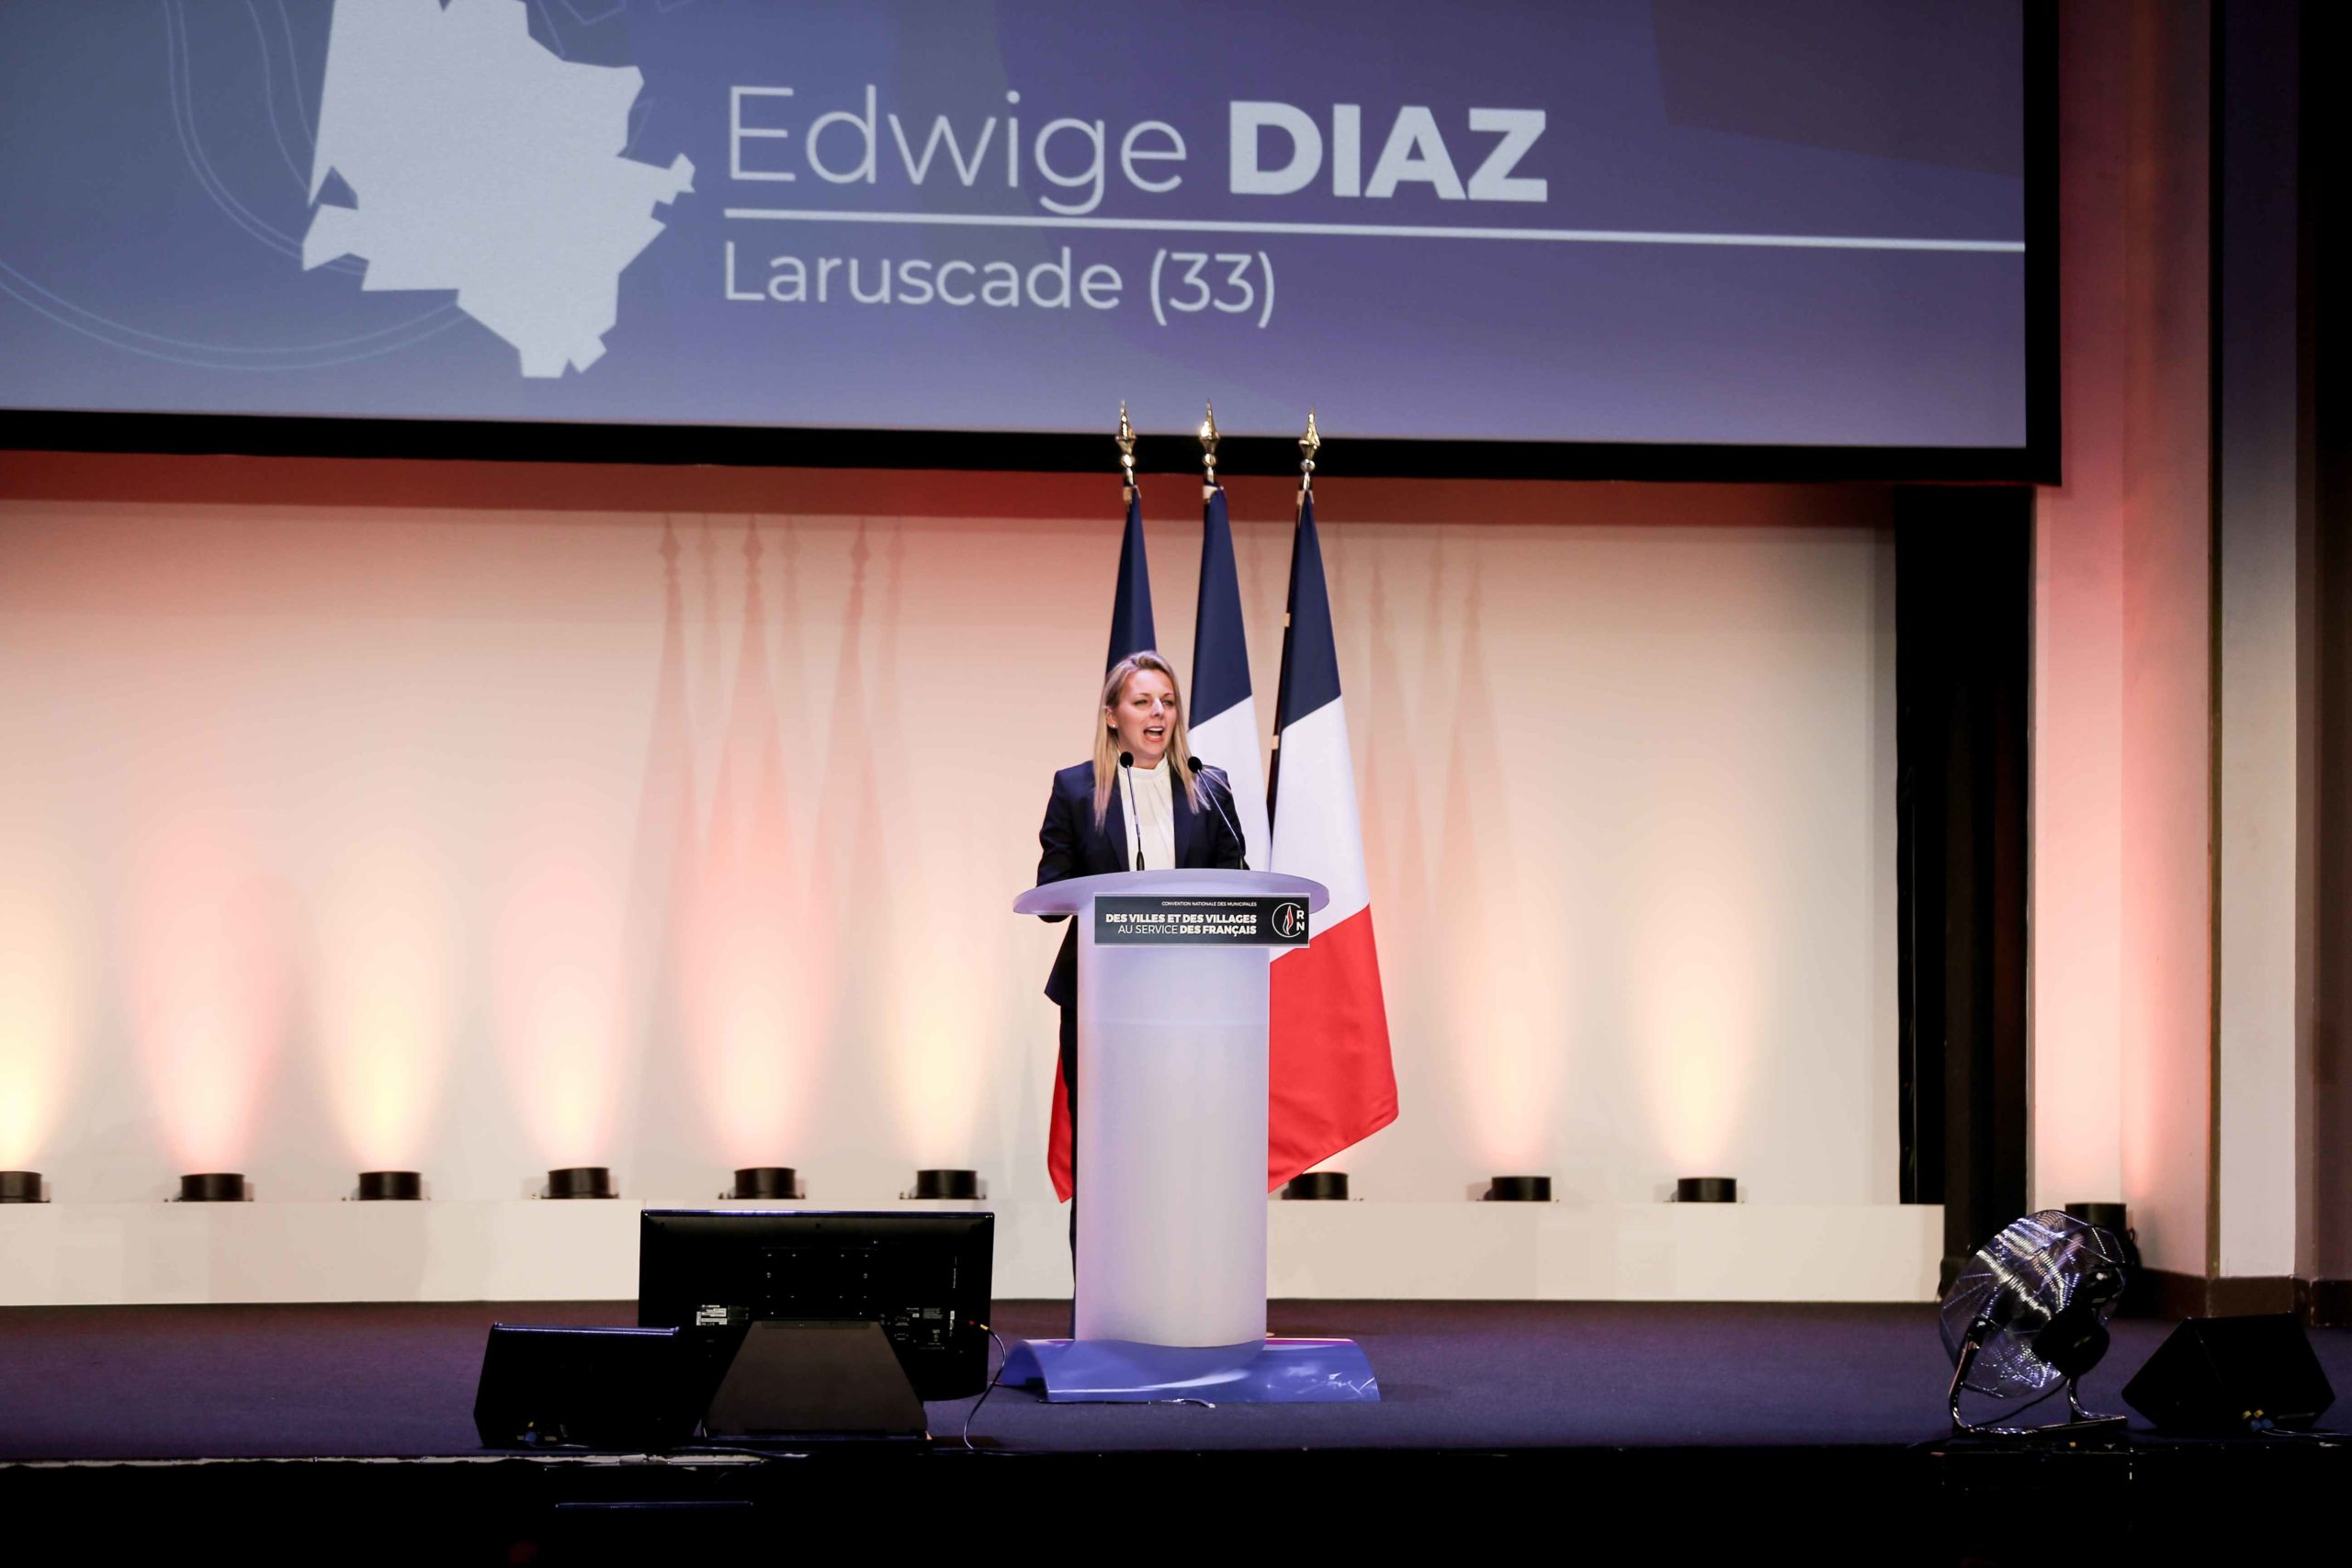 Edwige Diaz, the Rassemblement national (RN) candidate in the forthcoming mayoral election in Laruscade (Gironde),speaks in Paris, on January 12, 2020, during a meeting to launch the RN campaign candidates for the next municipal elections.  The 2020 French